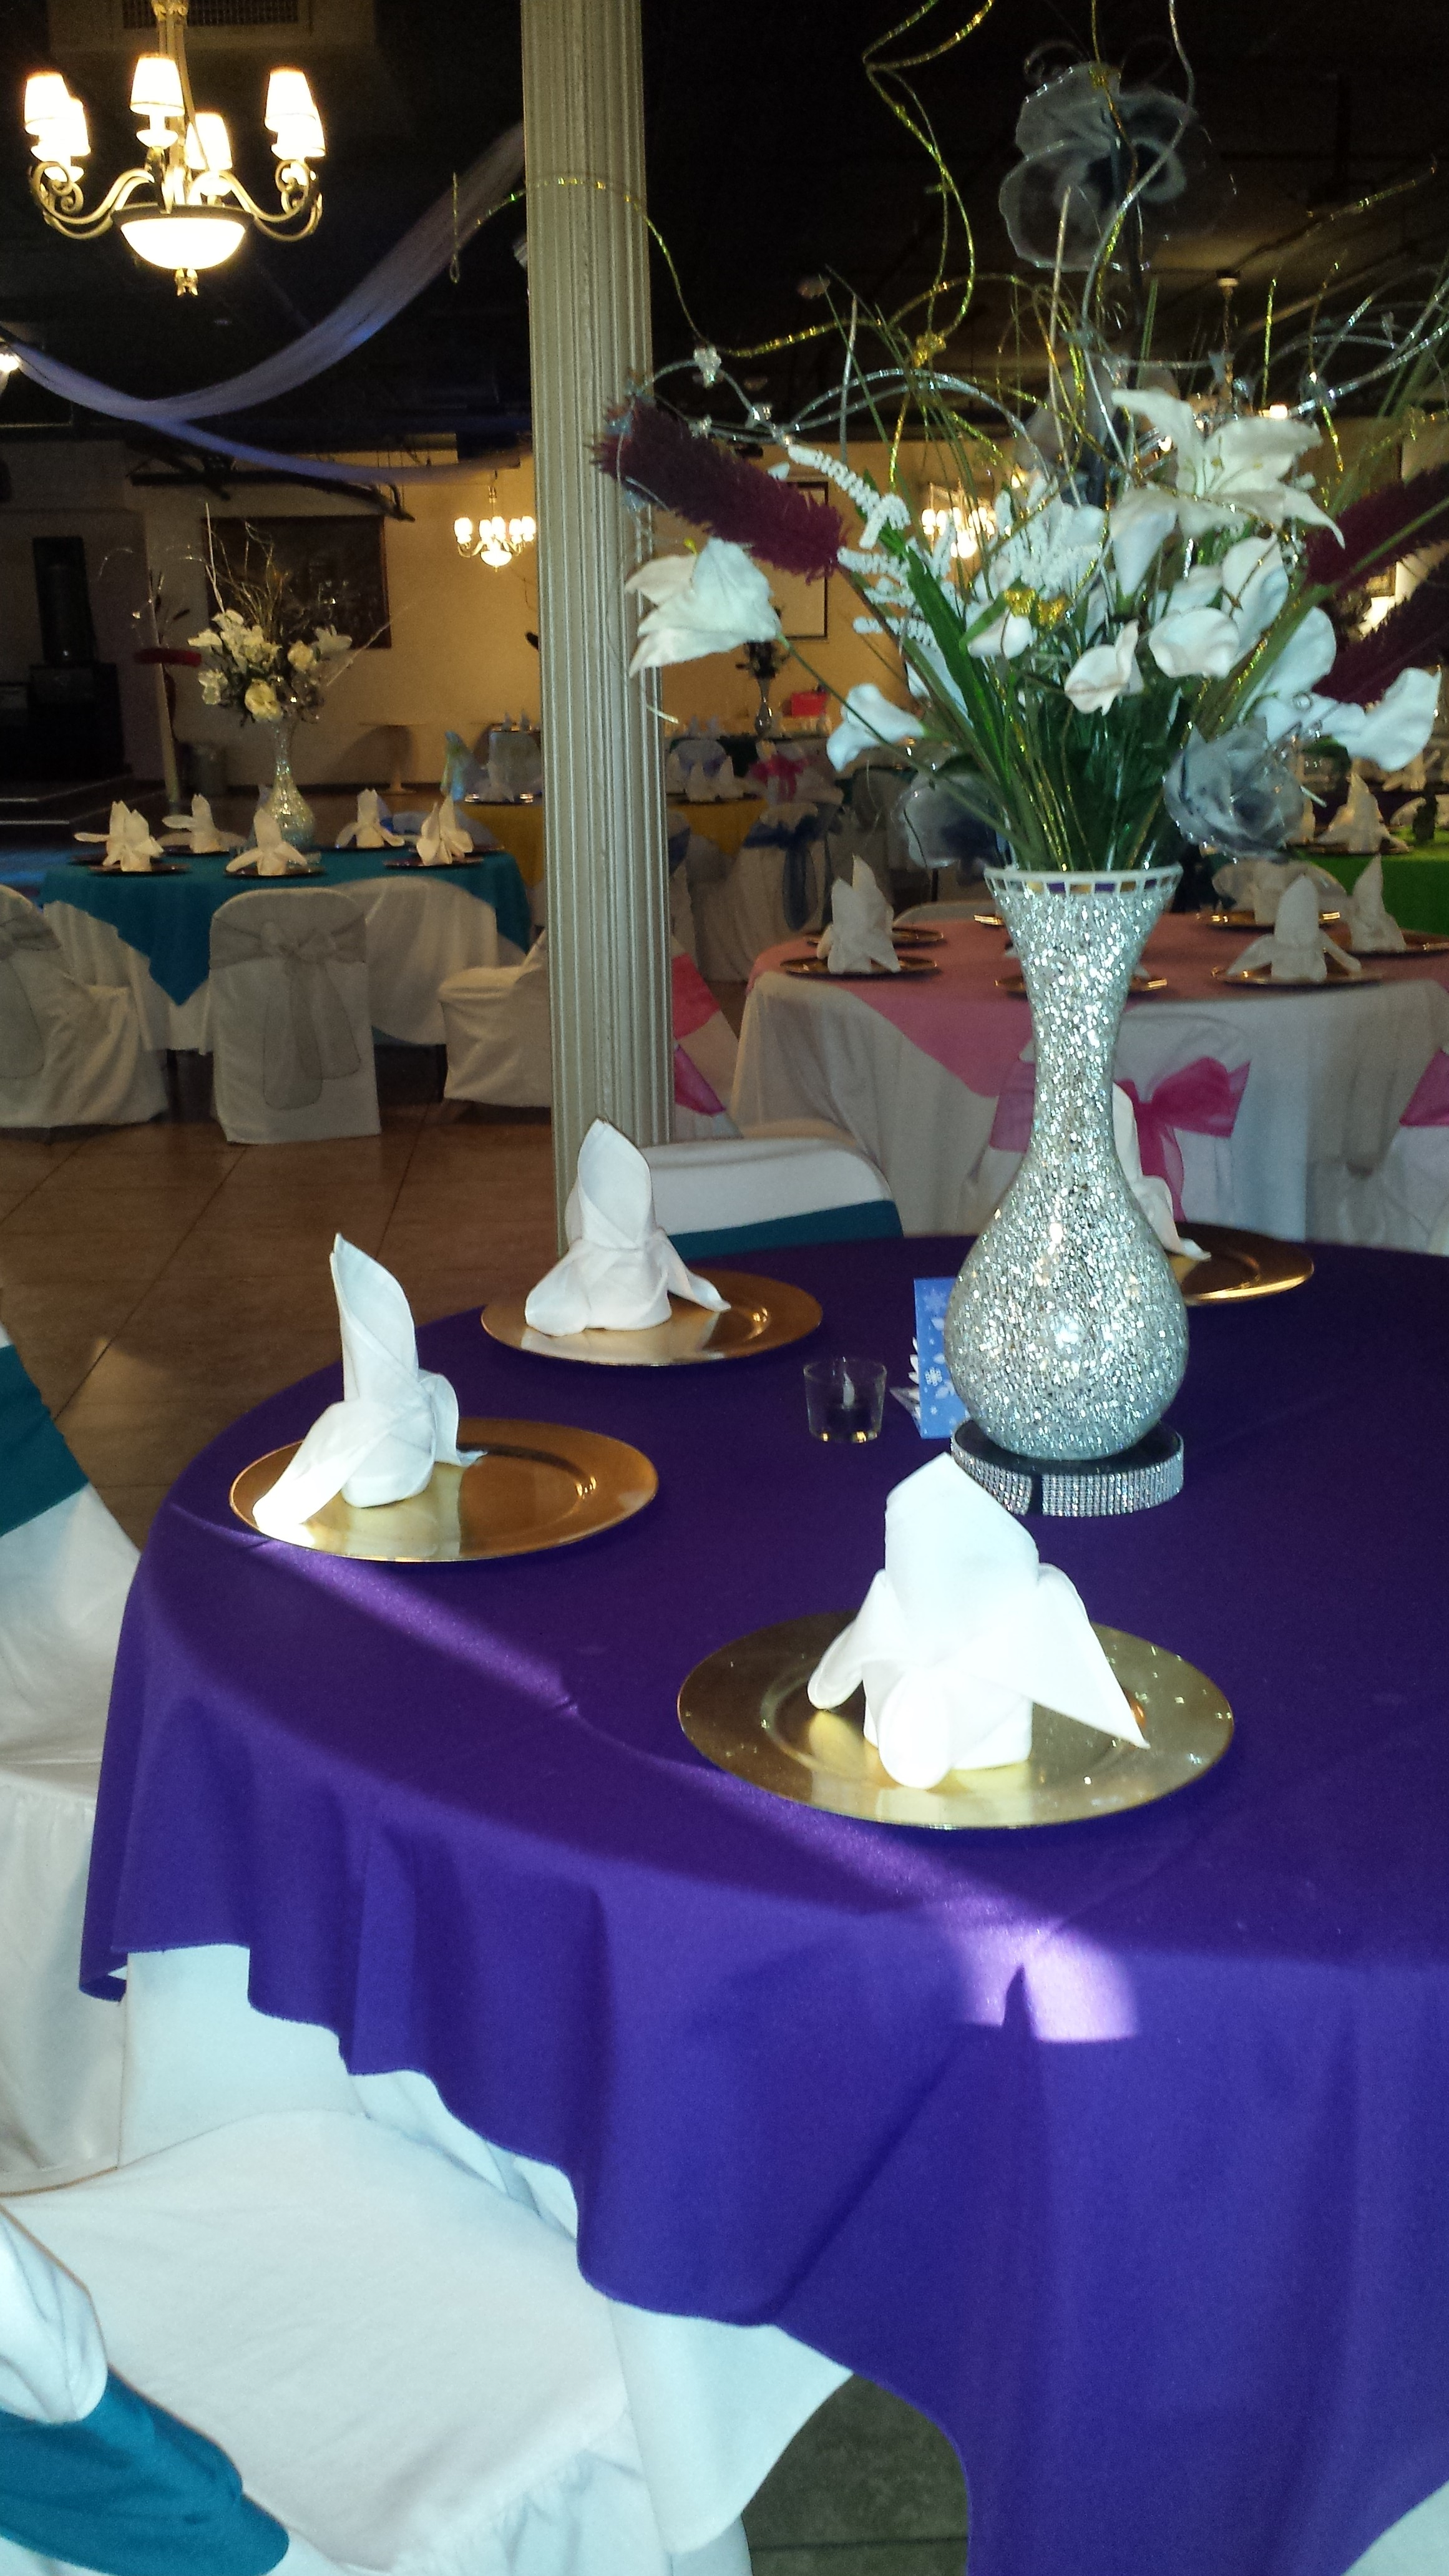 Purple table linens look great!